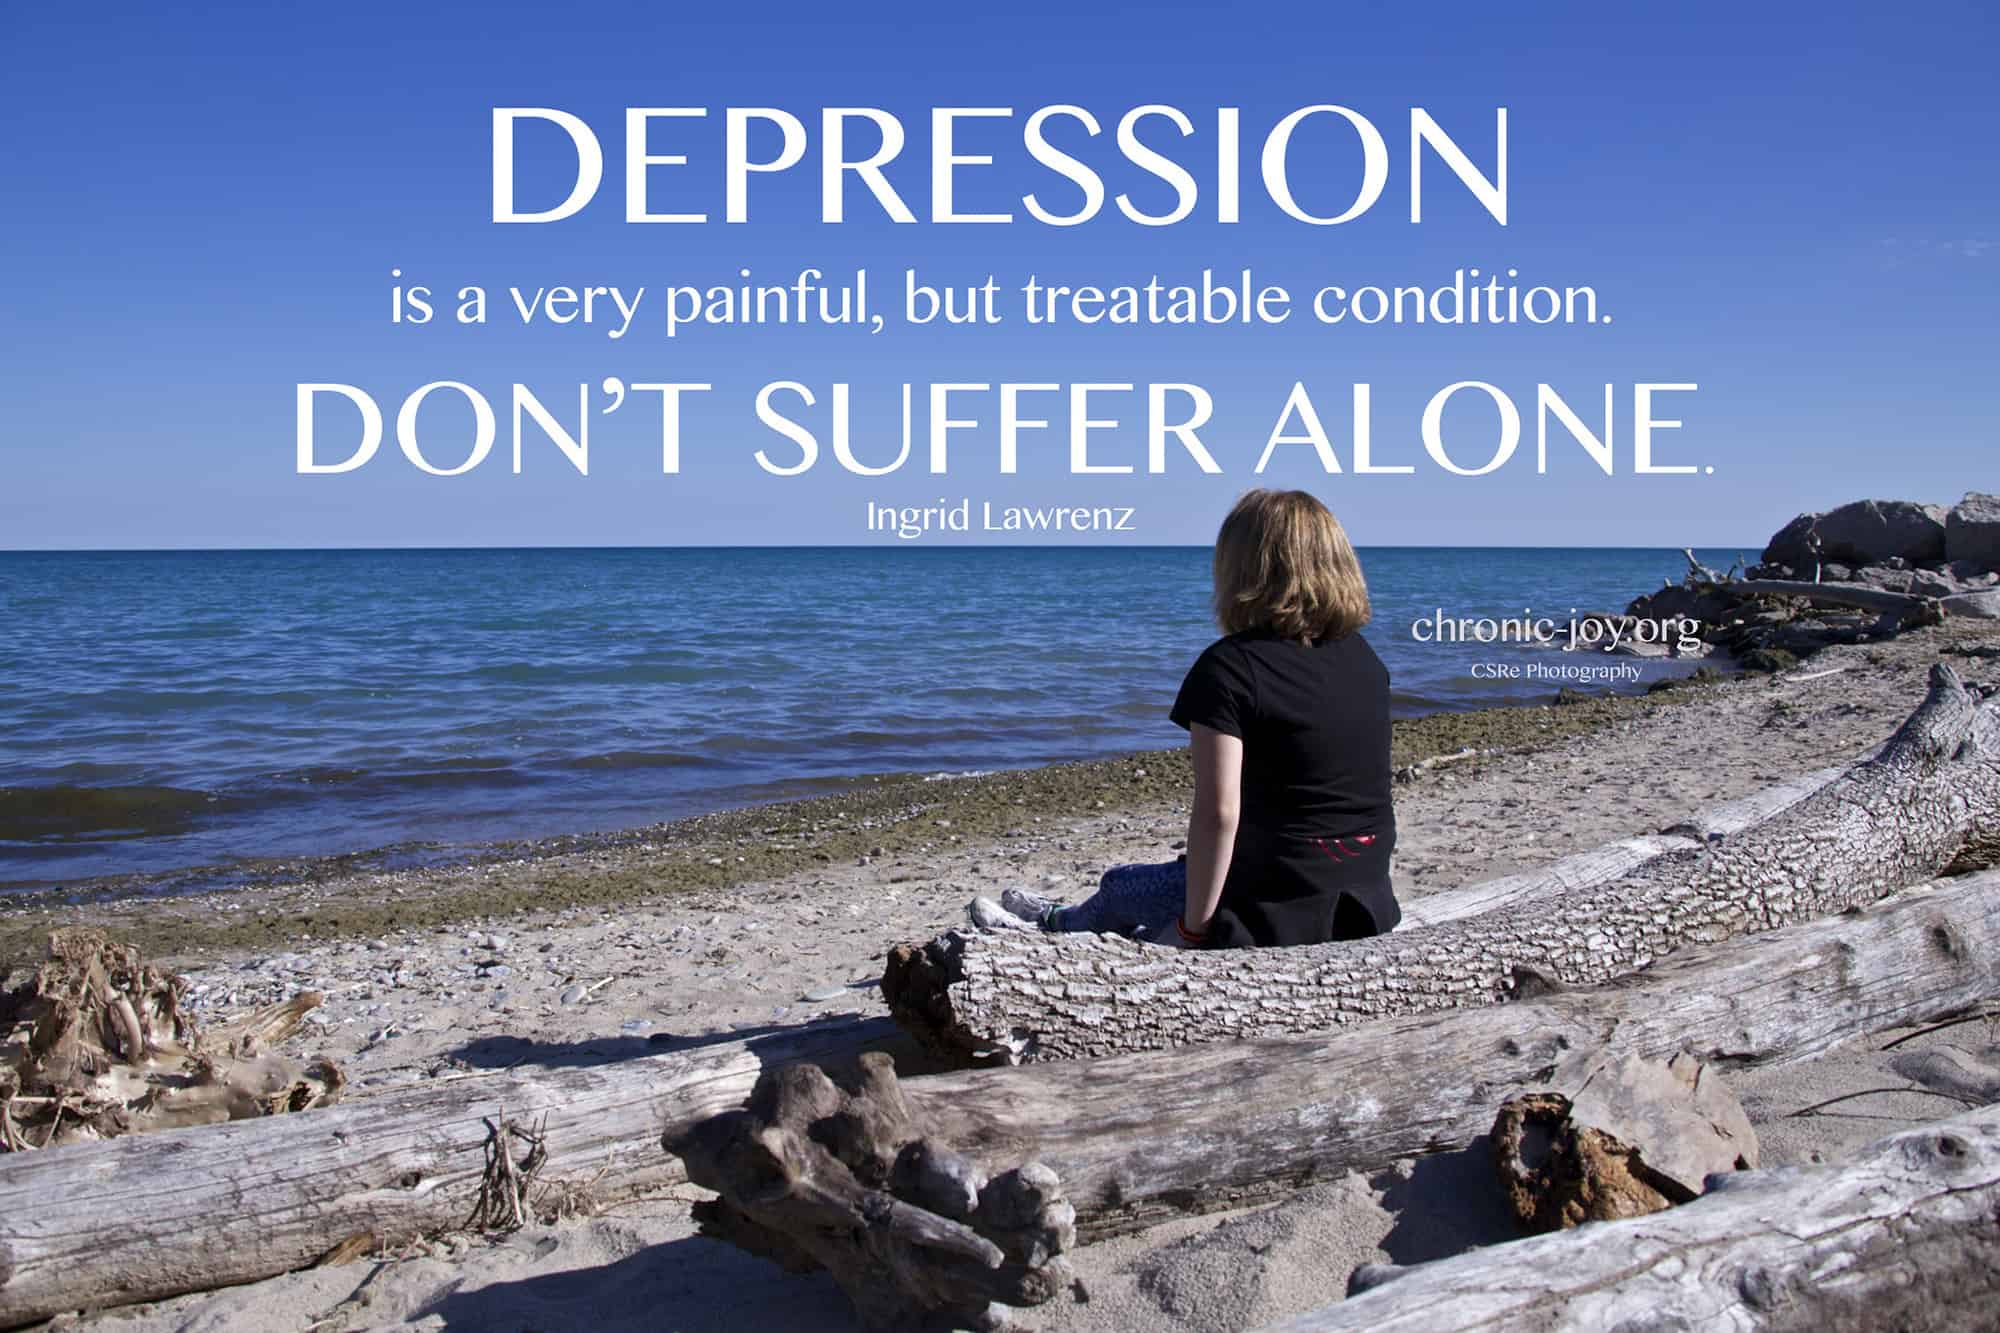 Depression is very painful.